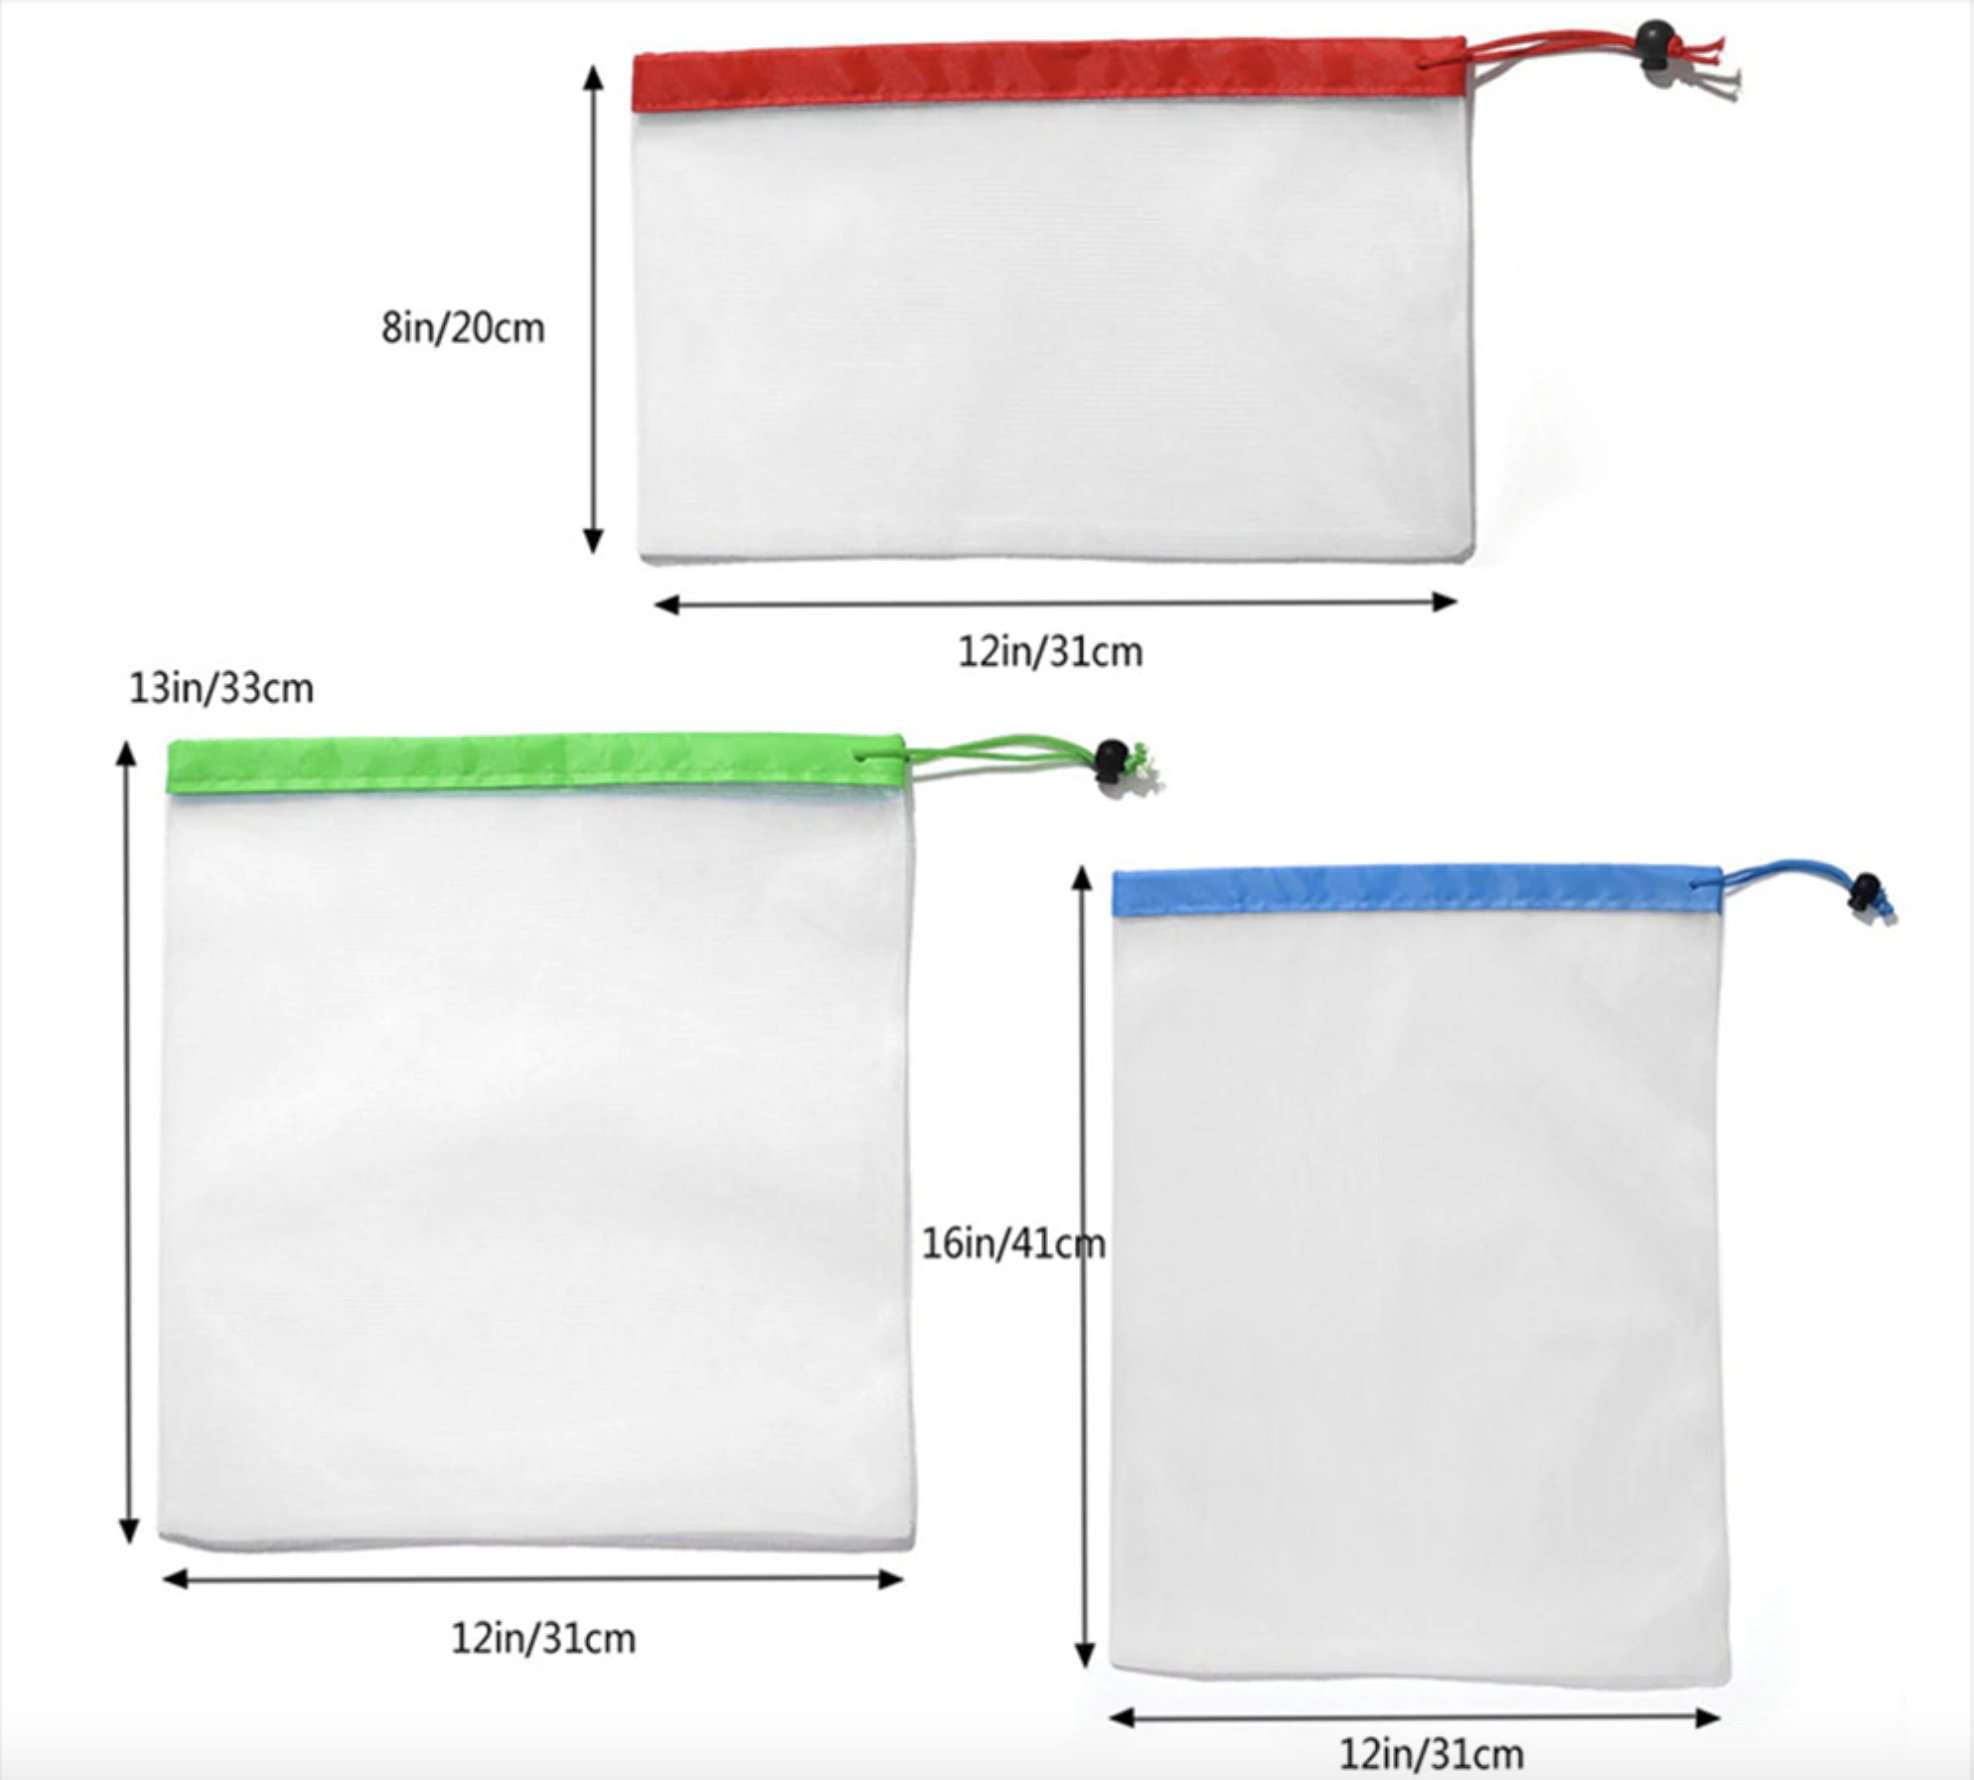 12pcs Reusable Mesh Produce Bags - Washable Eco Friendly Mesh Bags with Drawstring for Grocery Shopping - Ecosifu